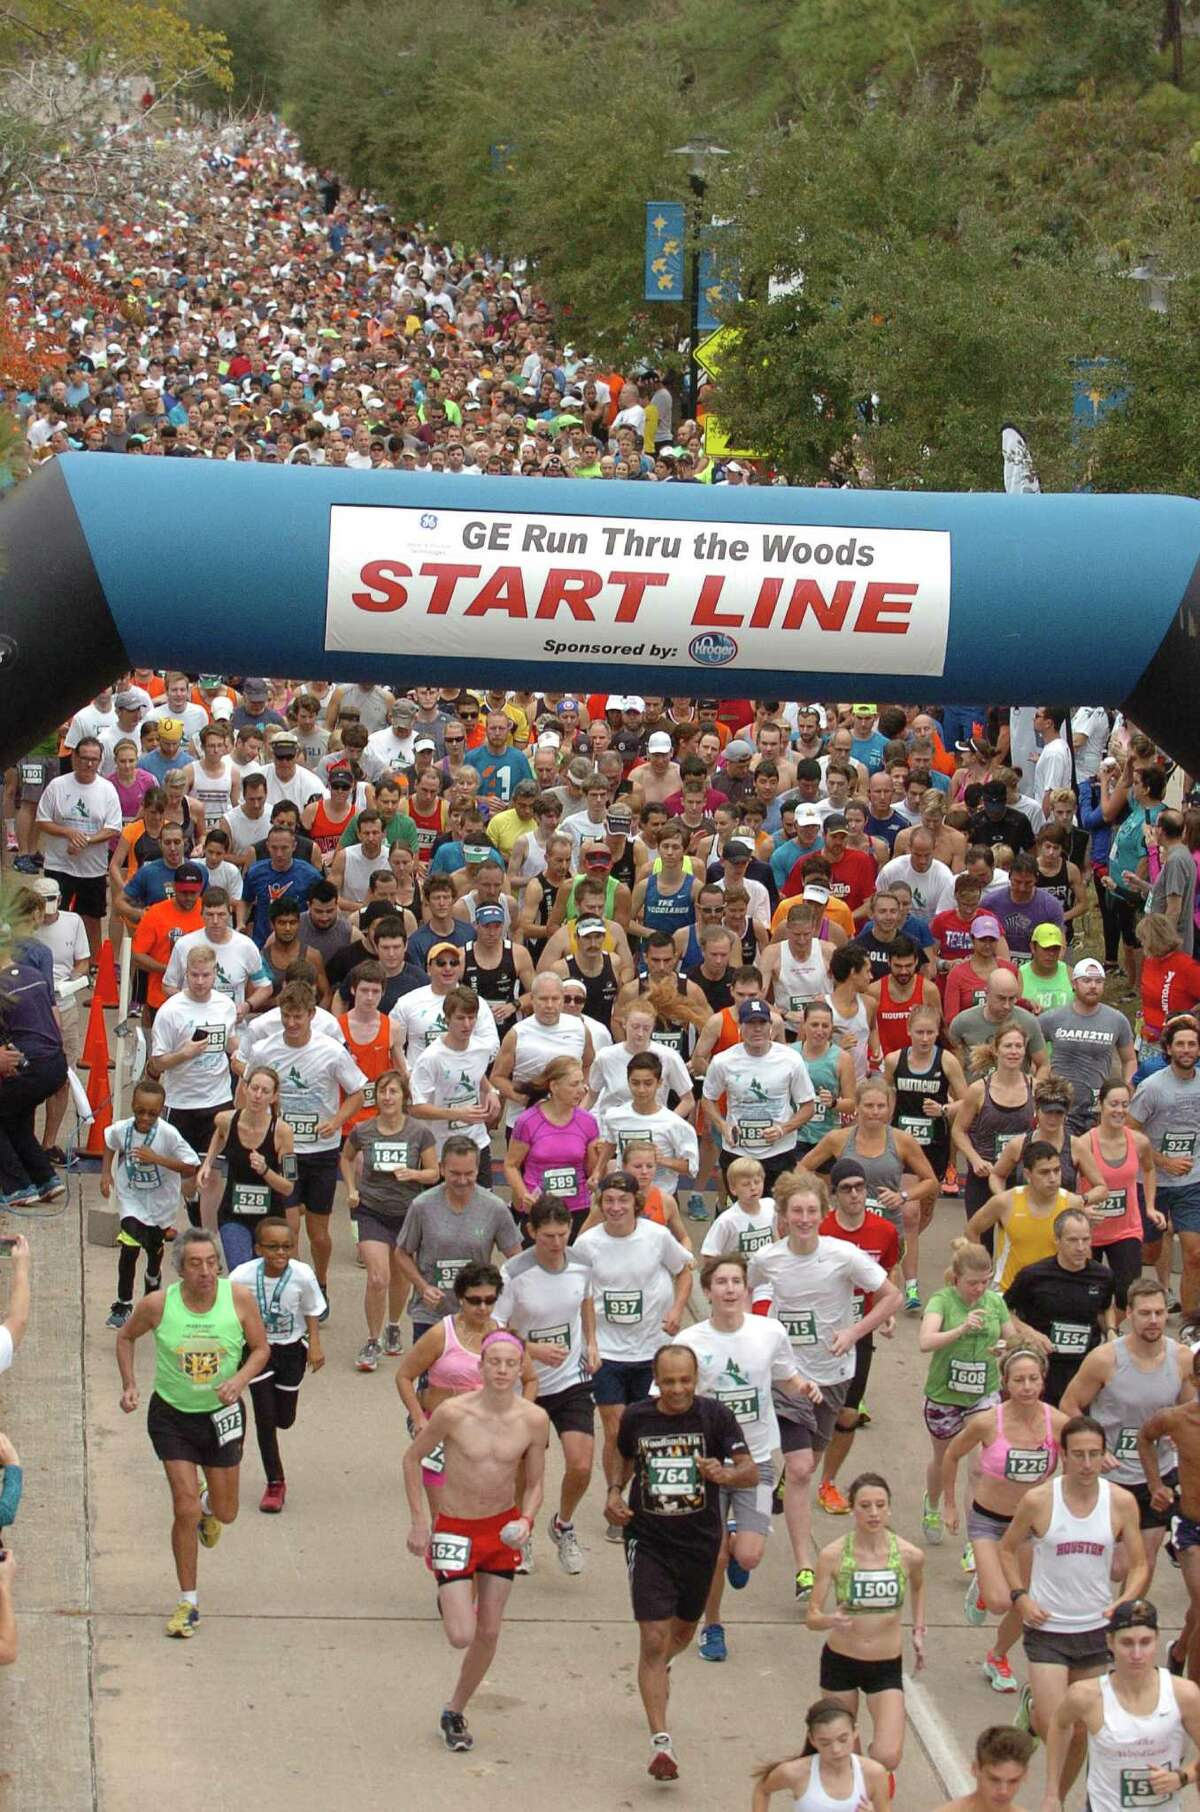 On Thanksgiving morning, thousands of people will make their way through The Woodlands' communities as participants of GE Run Thru The Woods. Directed by the YMCA, the event has been a source of fundraising for local charities for 27 years.